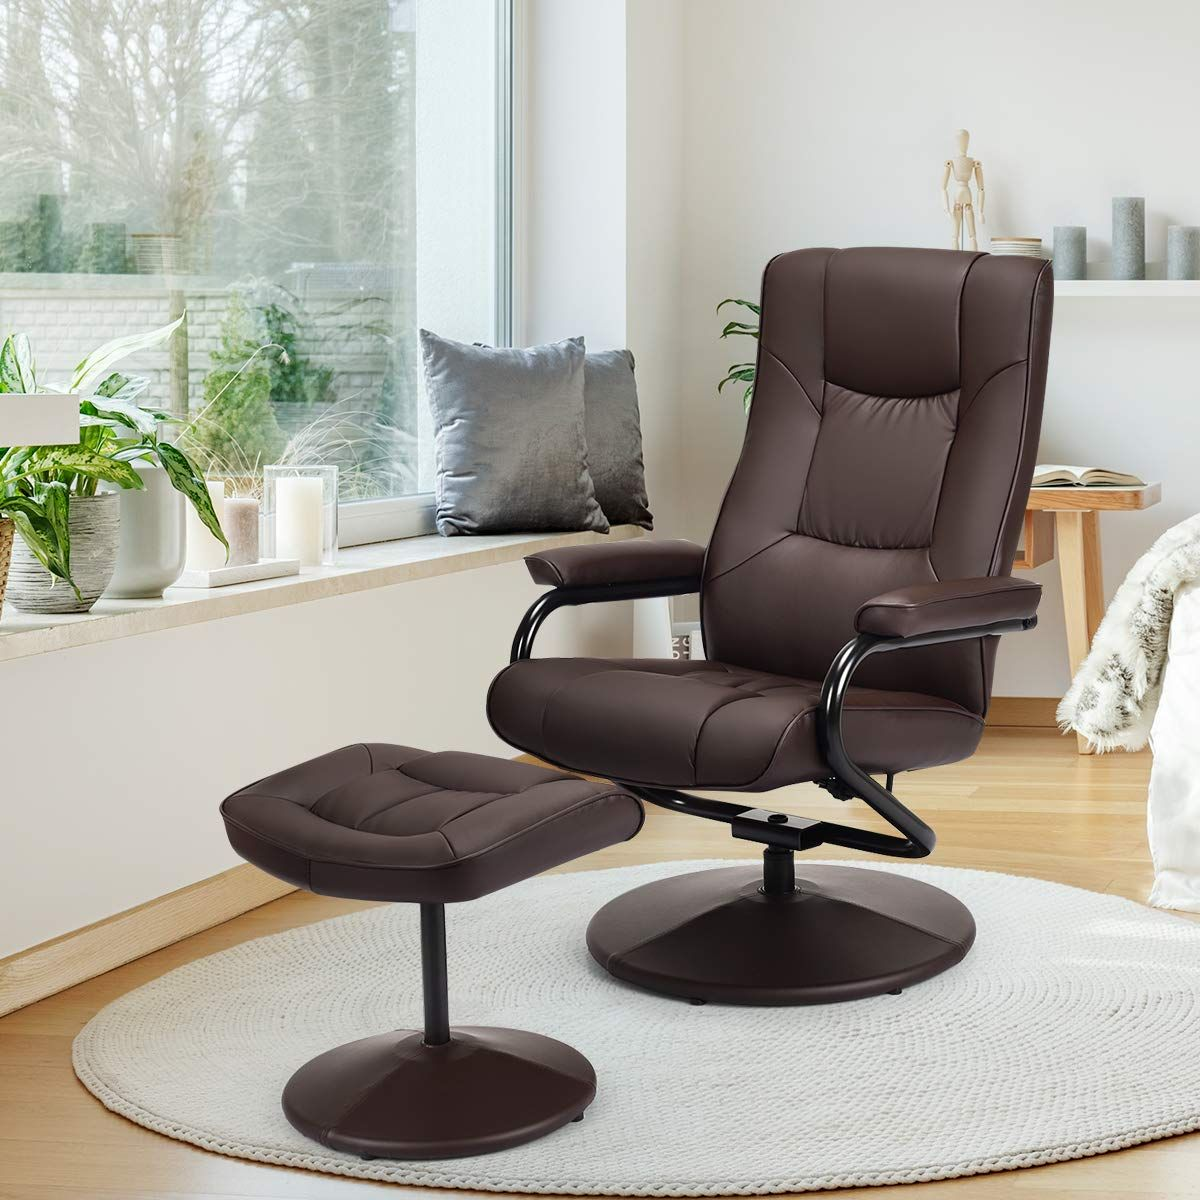 Giantex Swivel Recliner Chair Reclining office chair